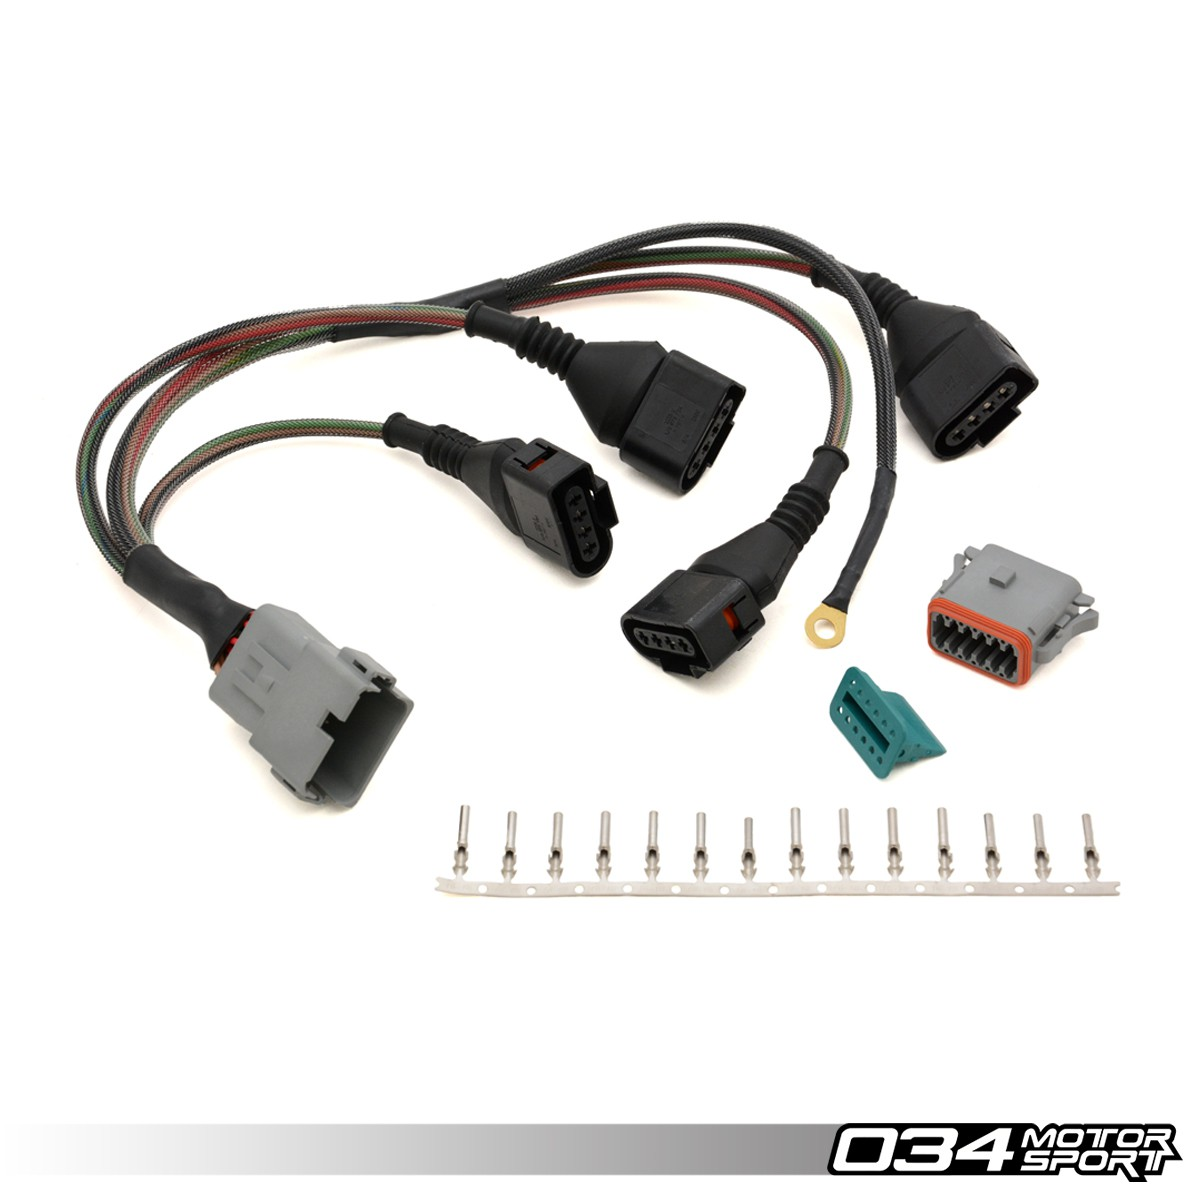 repair update harness audi volkswagen 18t with 4 wire coils 034motorsport 034 701 0004 2 repair update harness, audi volkswagen 1 8t with 4 wire coils what is the process for repairing wires in a harness at n-0.co